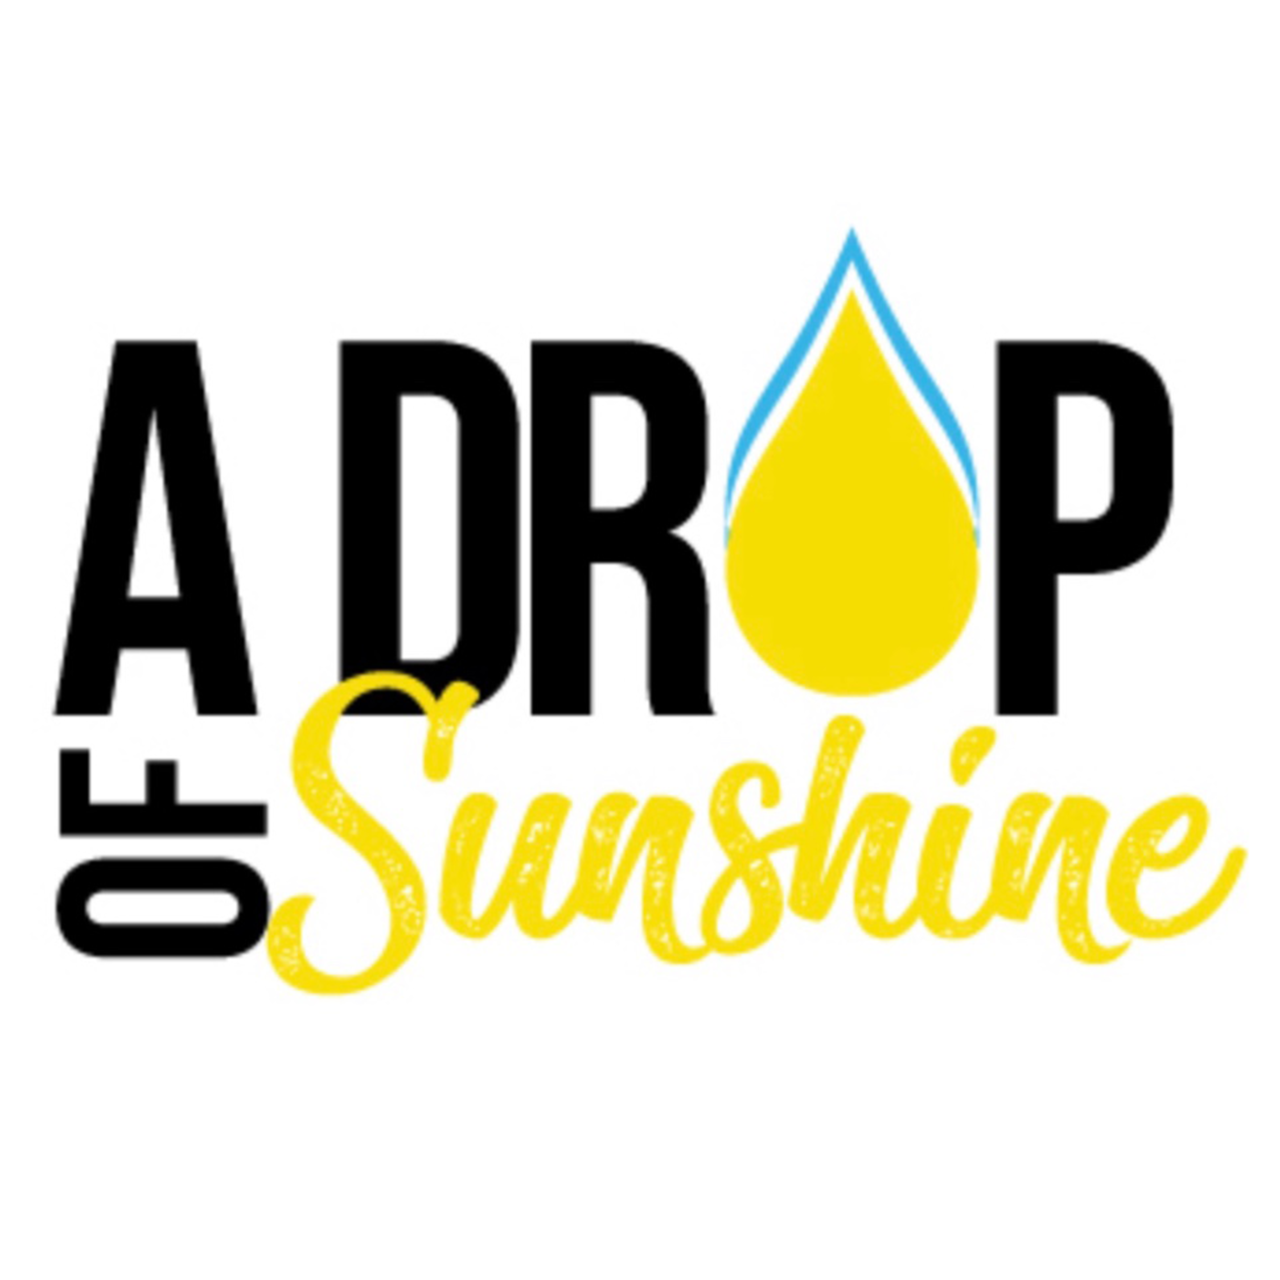 A Drop of Sunshine